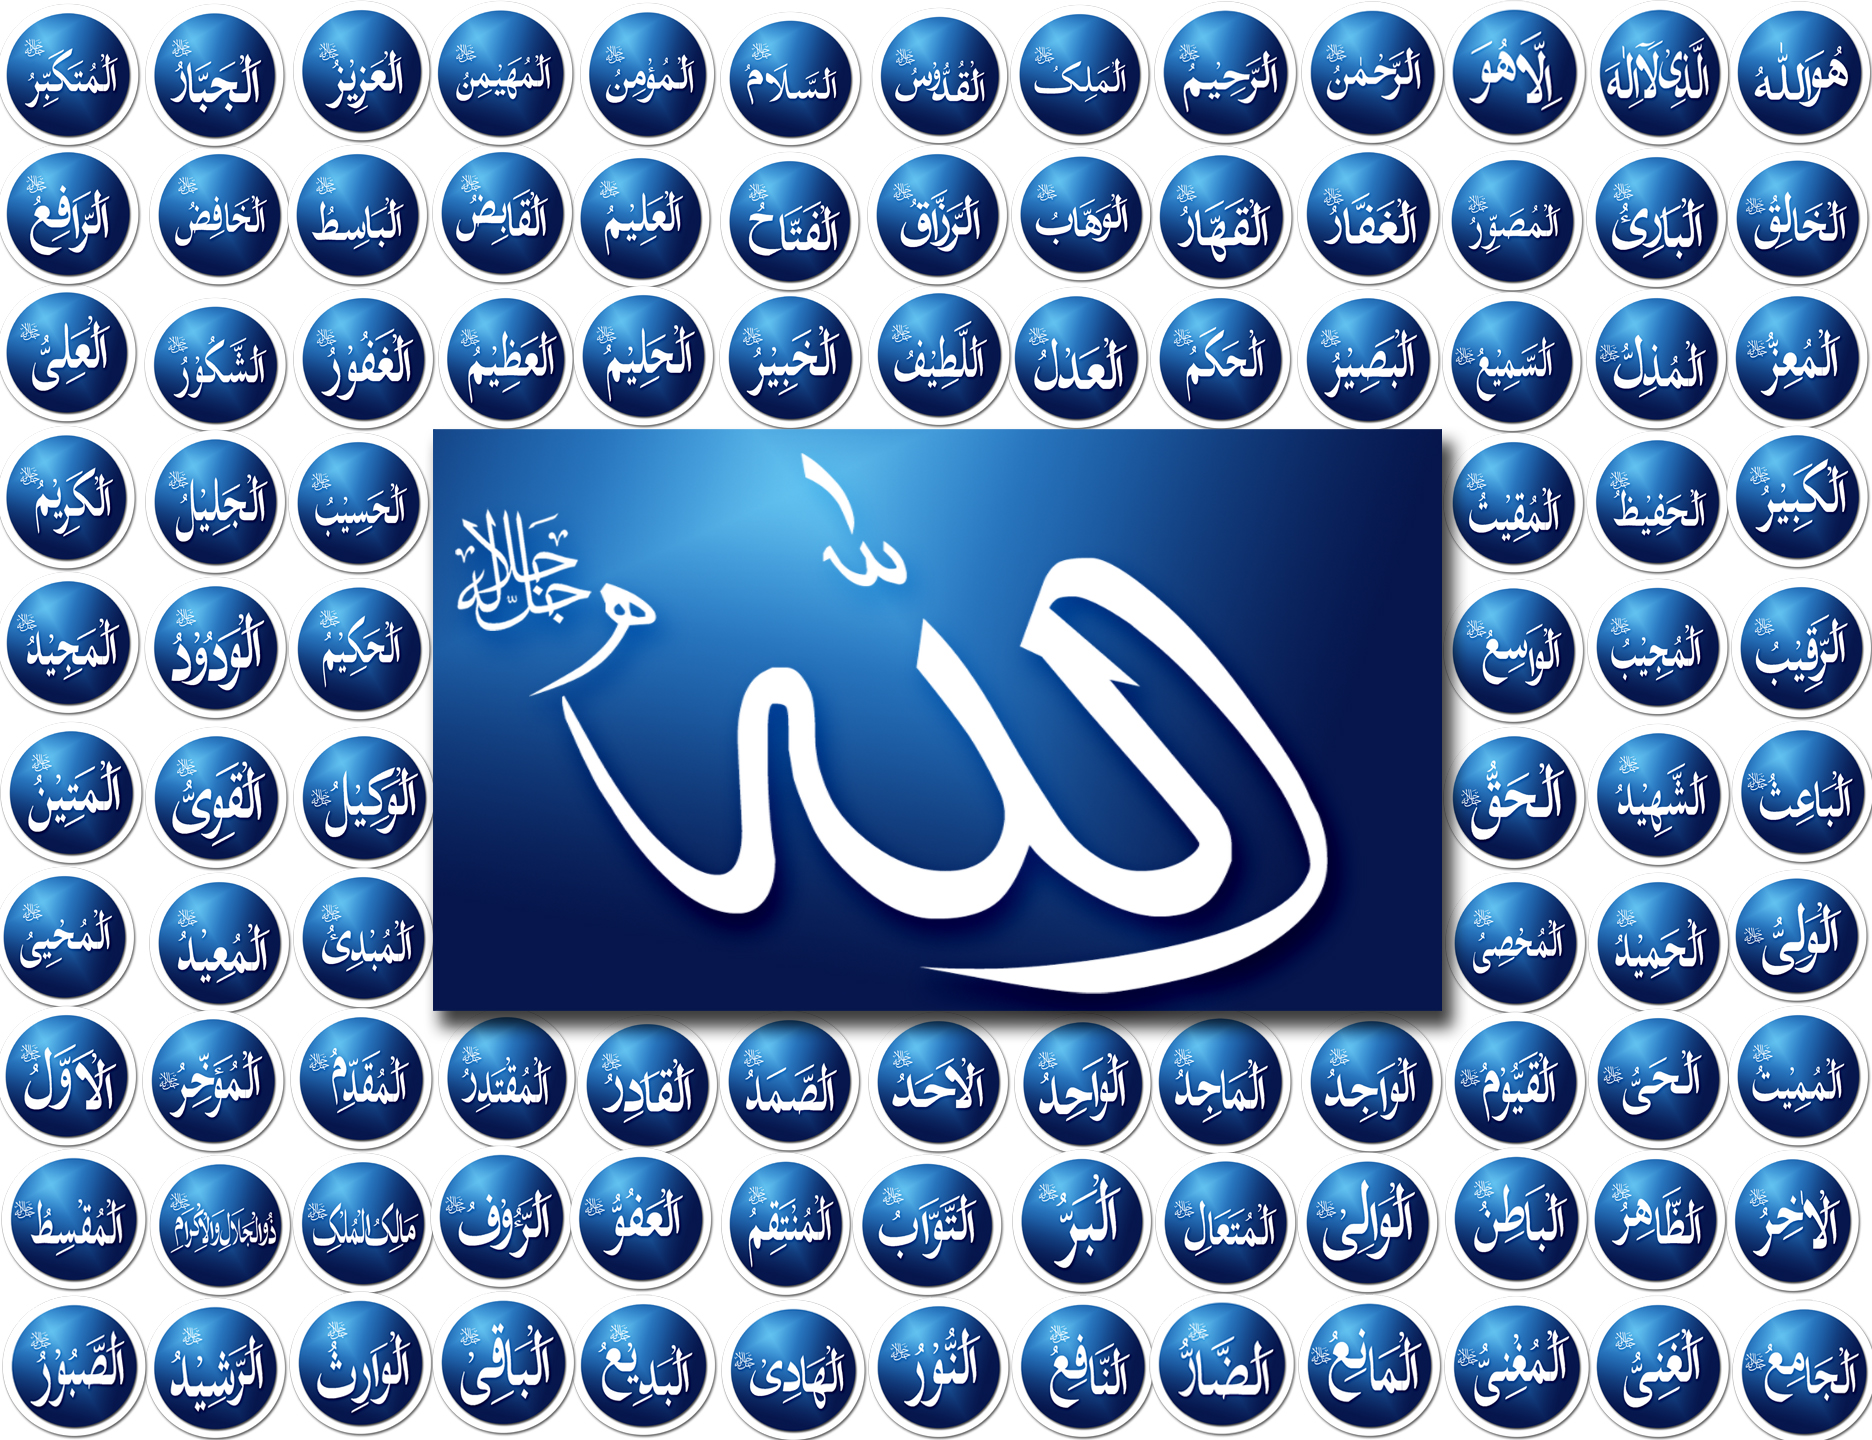 Memorizing 99 Glorious Names of Allah Subhana Wa Ta'ala-99-names-allah-wallpaper-jpg